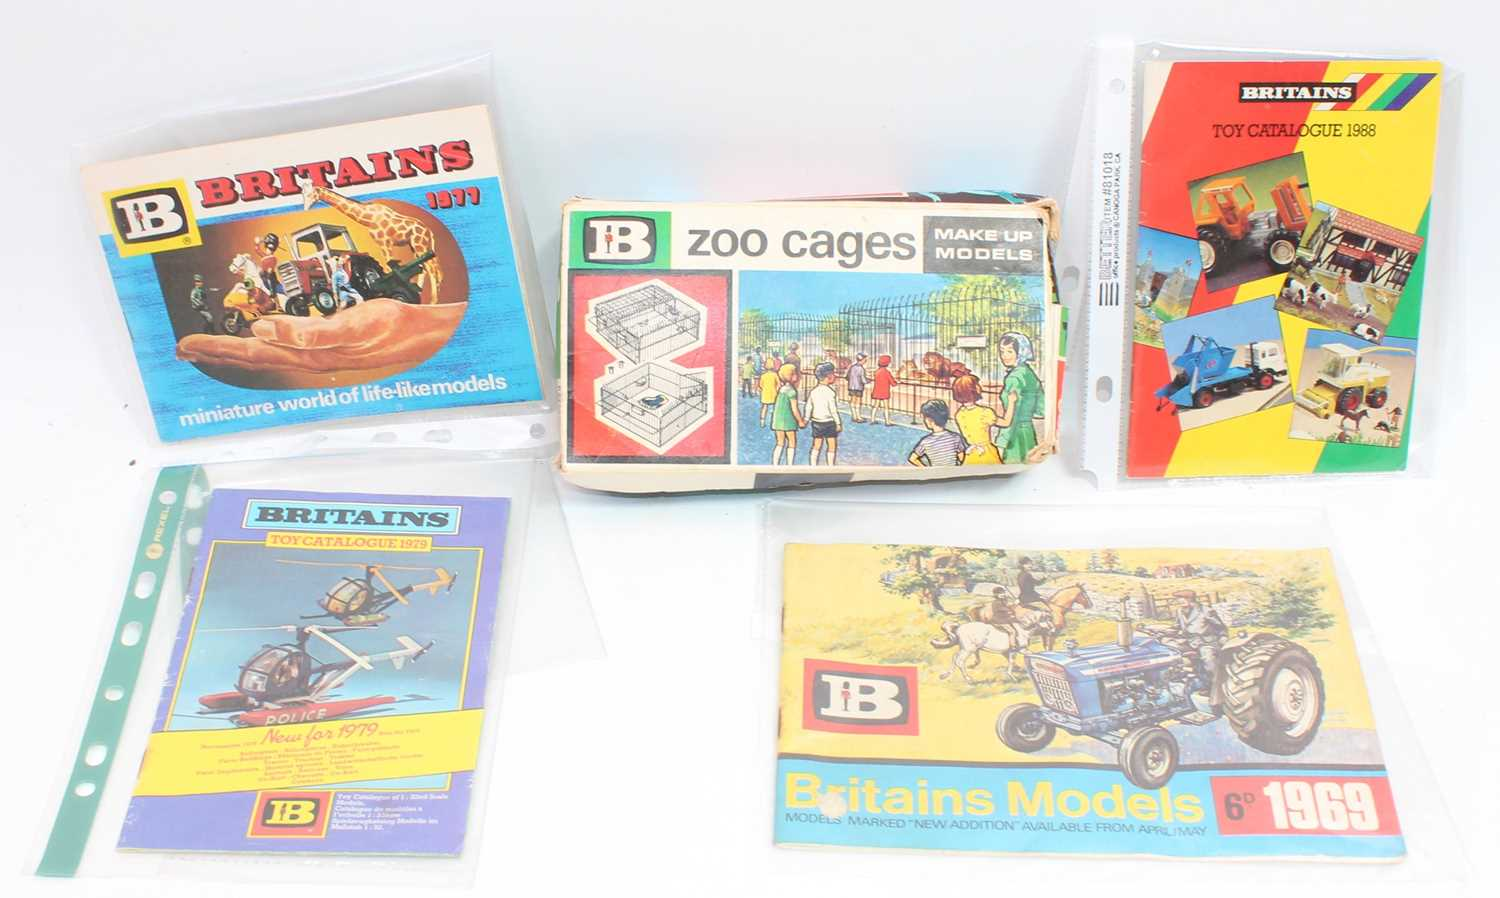 A collection of various Britains related items to include catalogue No. 4370 Britains plastic zoo